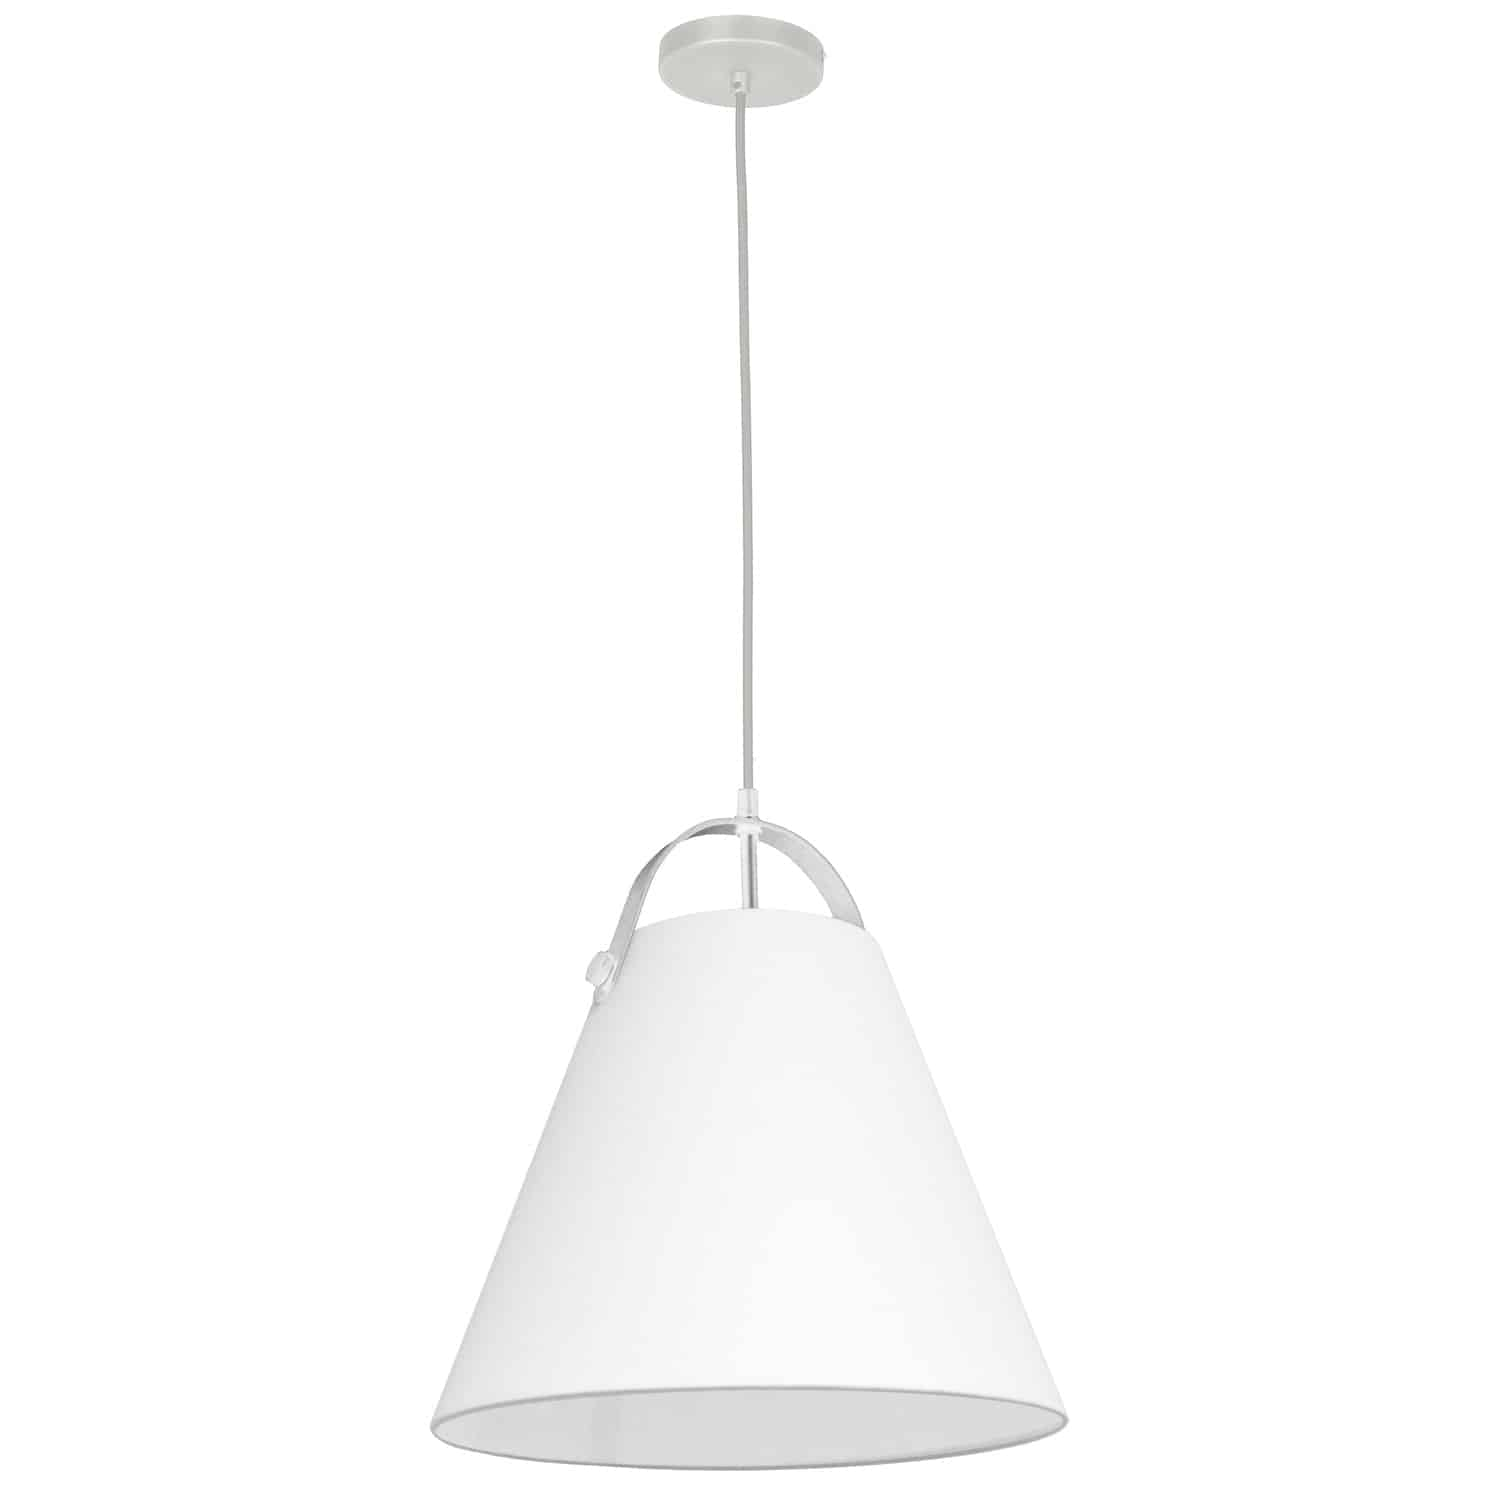 1 Light Emperor Pendant White with White Shade